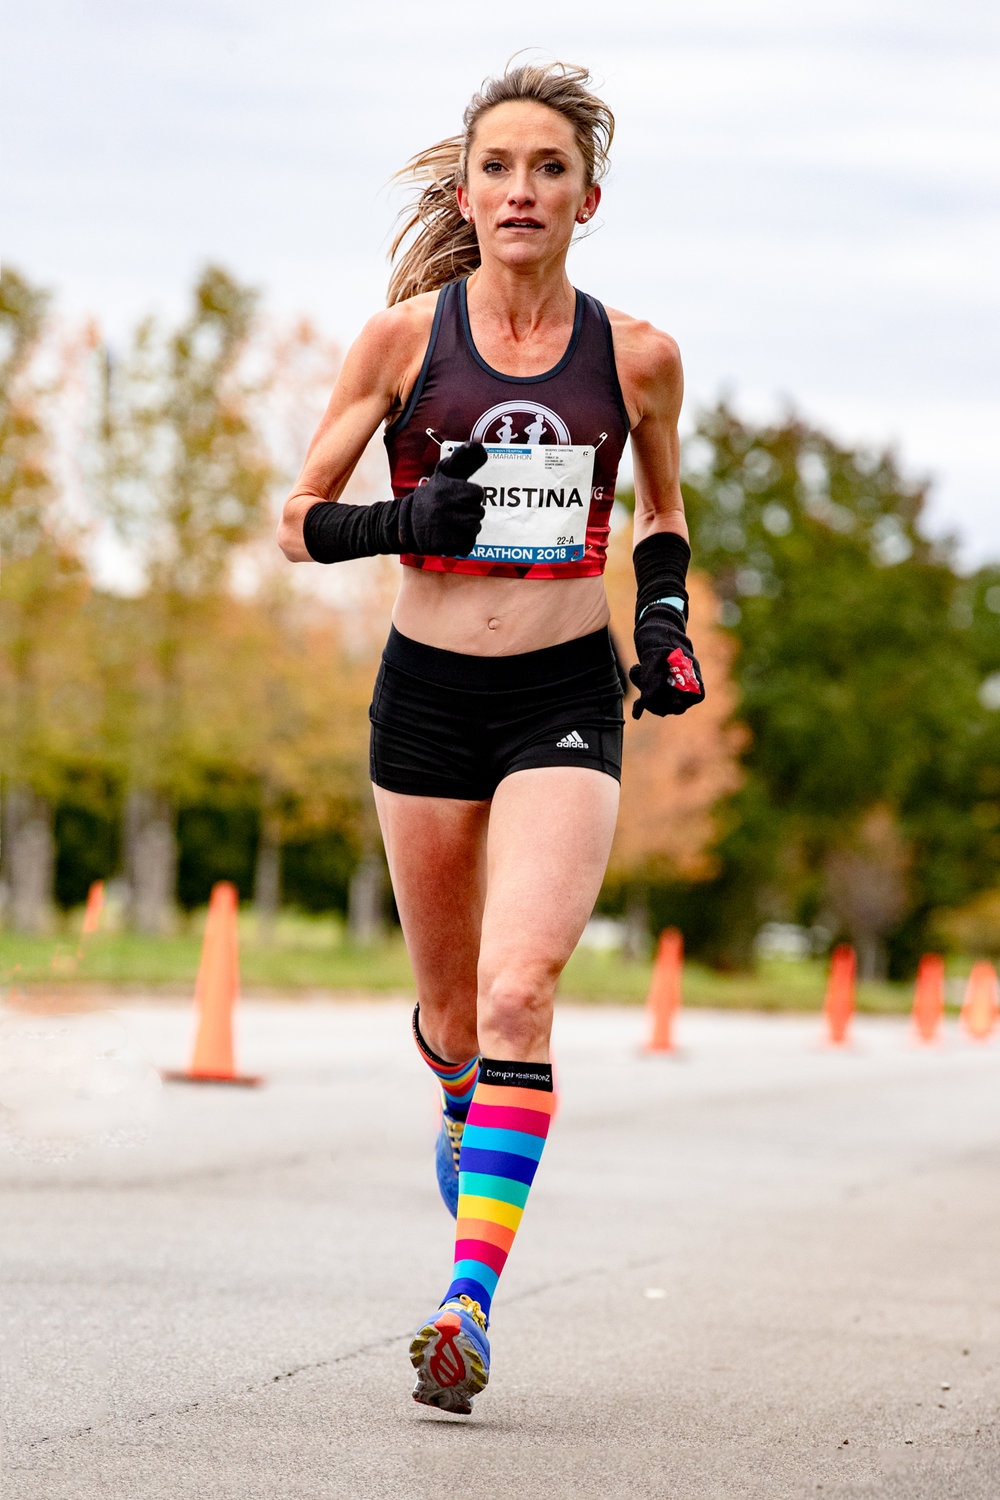 Christina Murphy, of Murphy Chiropractic & Performance Center, at mile 18. First female finisher, unofficial time of 2:40:43. With that time she qualifies for the 2020 Olympic Trials. Few more of my pics from the race are  here .